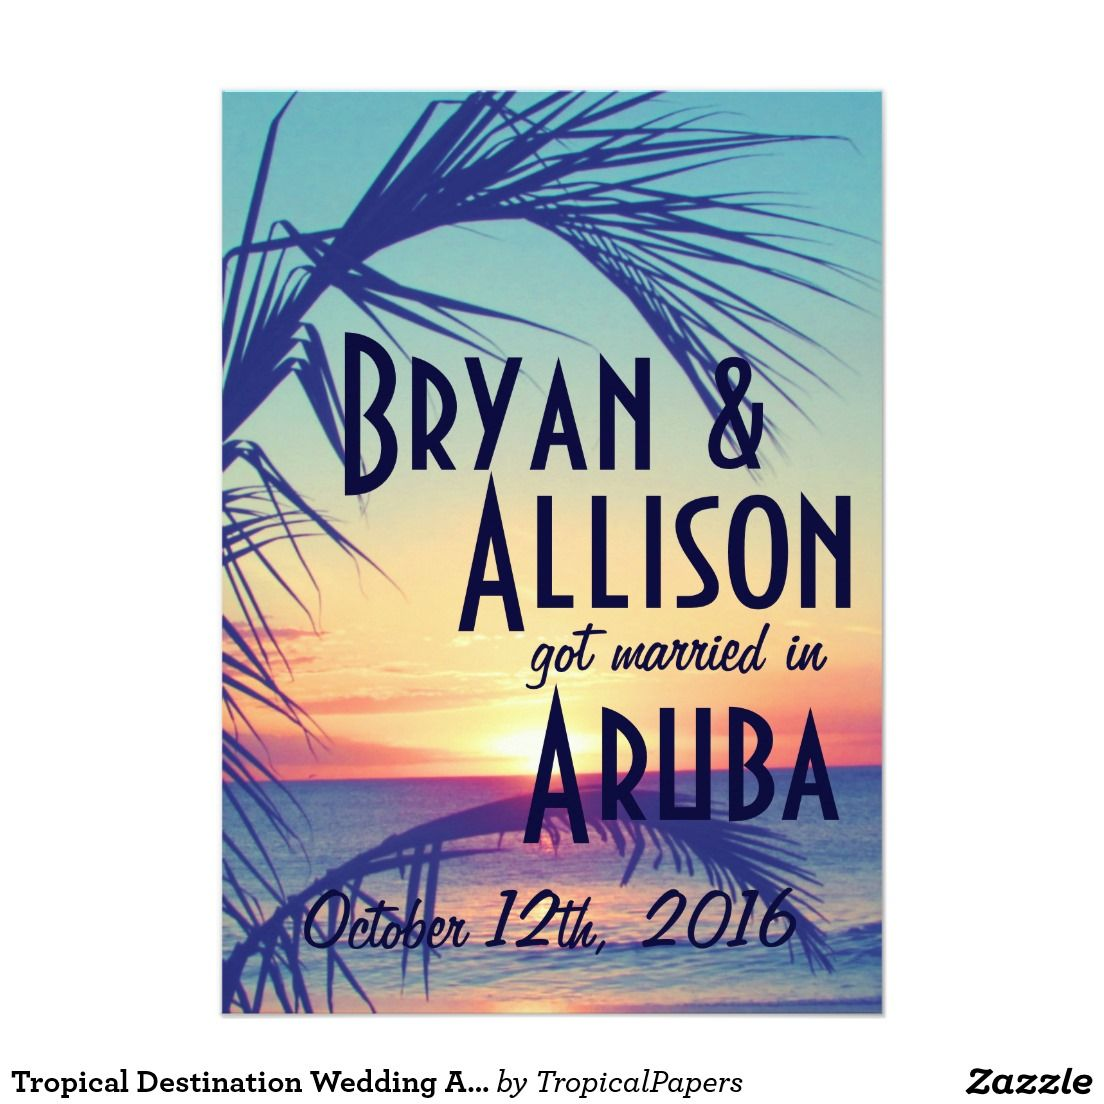 Tropical destination wedding announcement invite tropical tropical destination wedding announcement invite monicamarmolfo Image collections